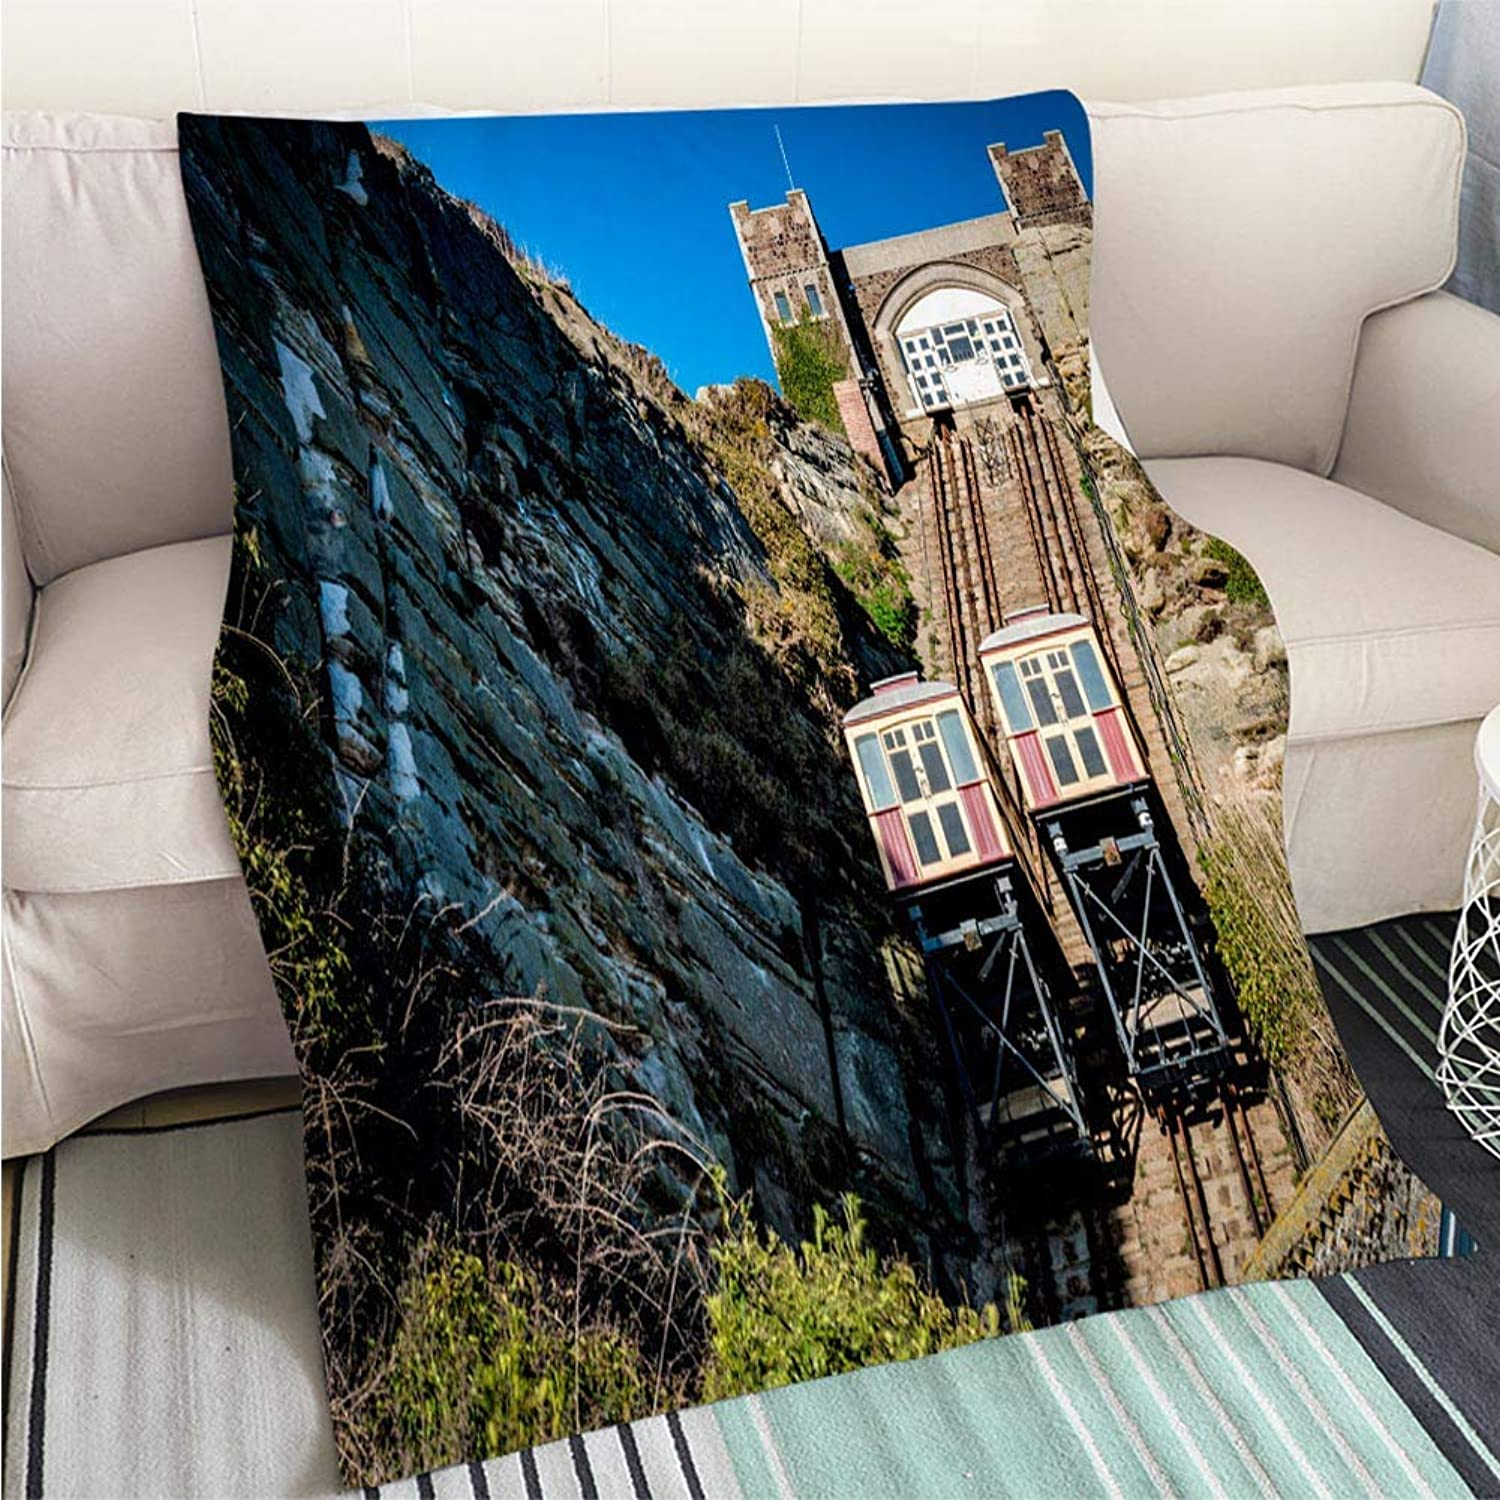 Luxury Super Soft Blanket East Hill Cliff Railway Perfect for Couch Sofa or Bed Cool Quilt